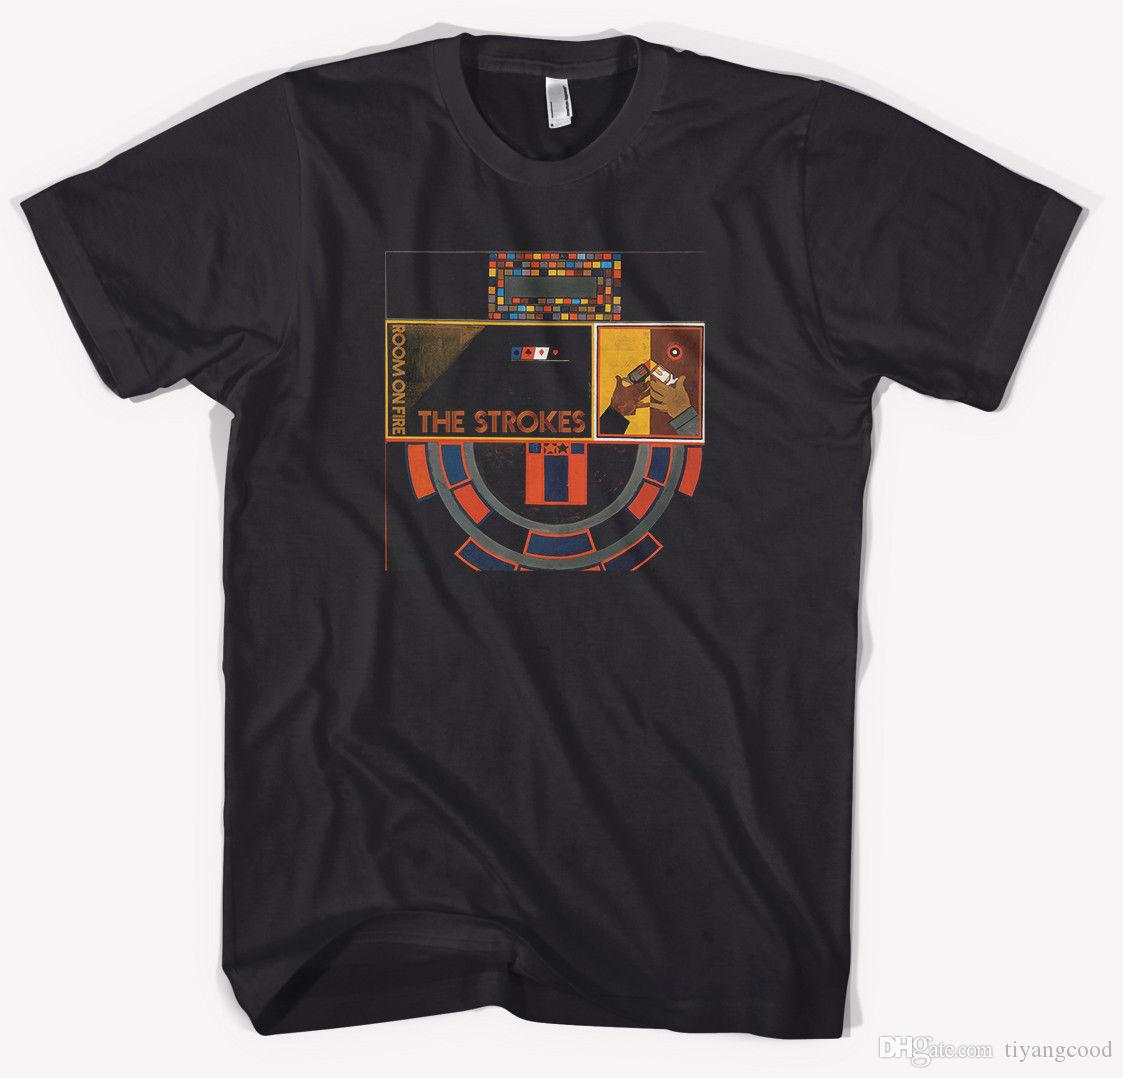 New The Strokes *Room on Fire Punk Rock Band Mens Black T-shirt S-3XL